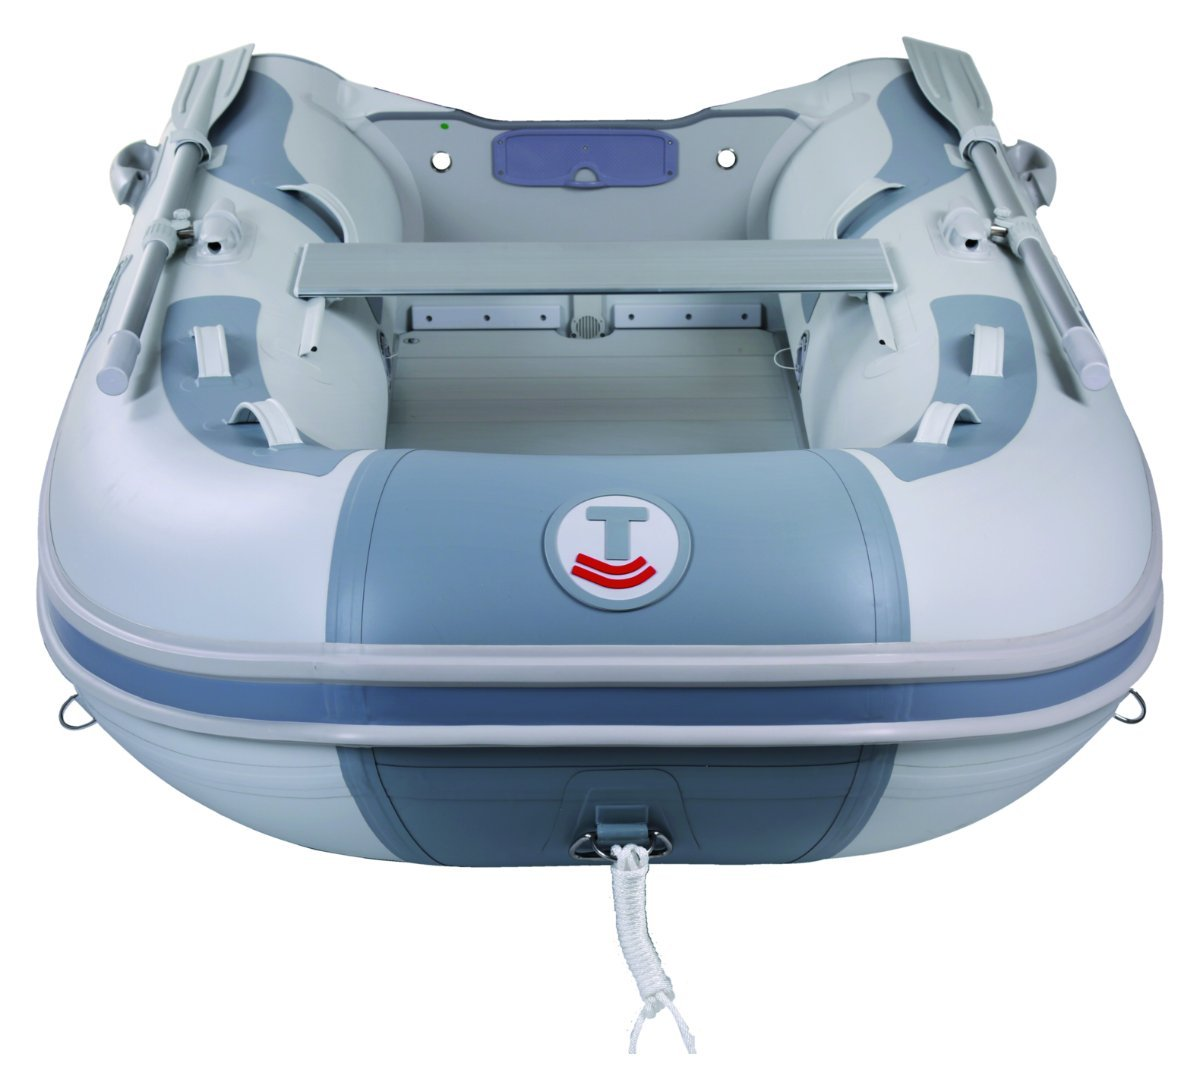 Talamex Highline 250 Alu Floor Inflatable Boat - IN STOCK NOW !